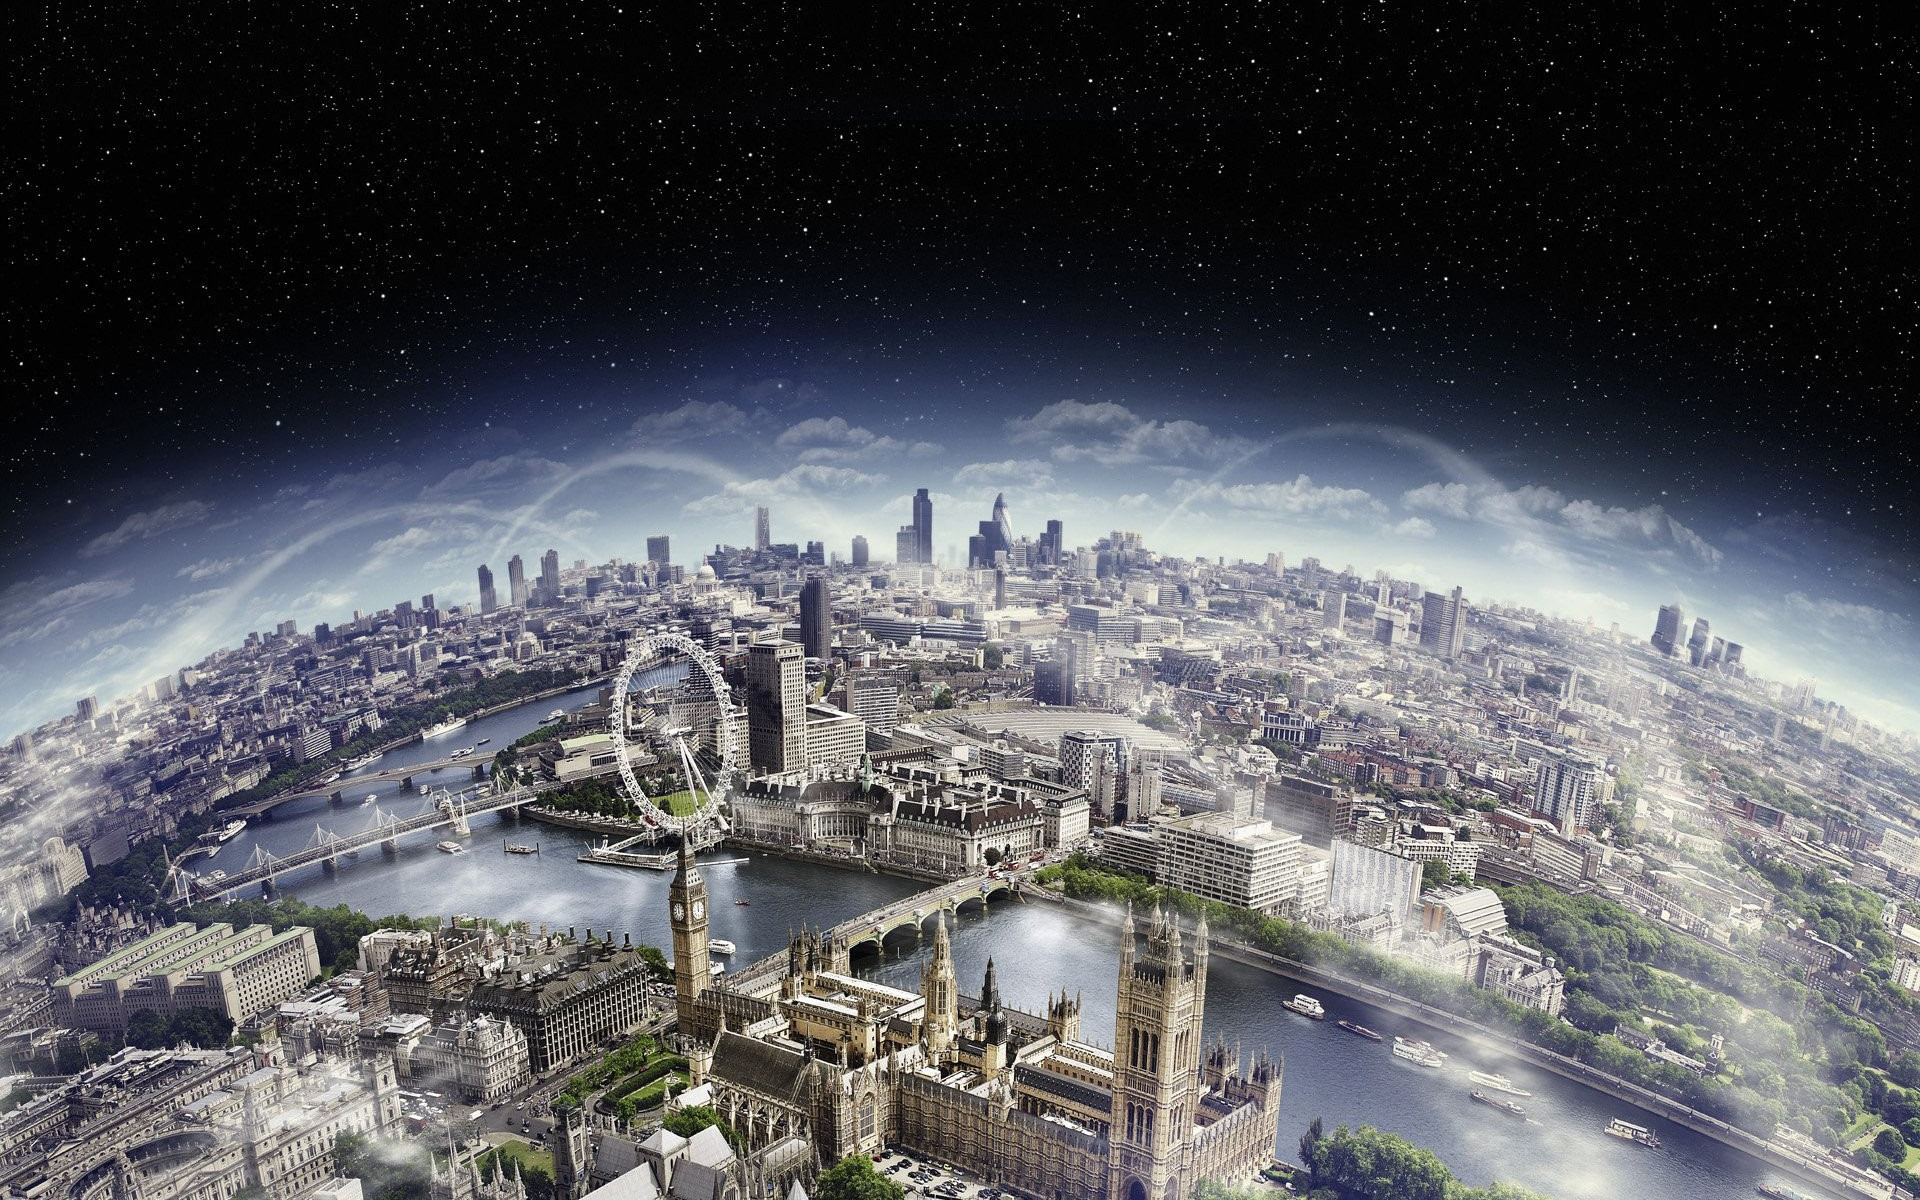 Us Military Wallpaper Quotes Daily Wallpaper London Aerial View I Like To Waste My Time